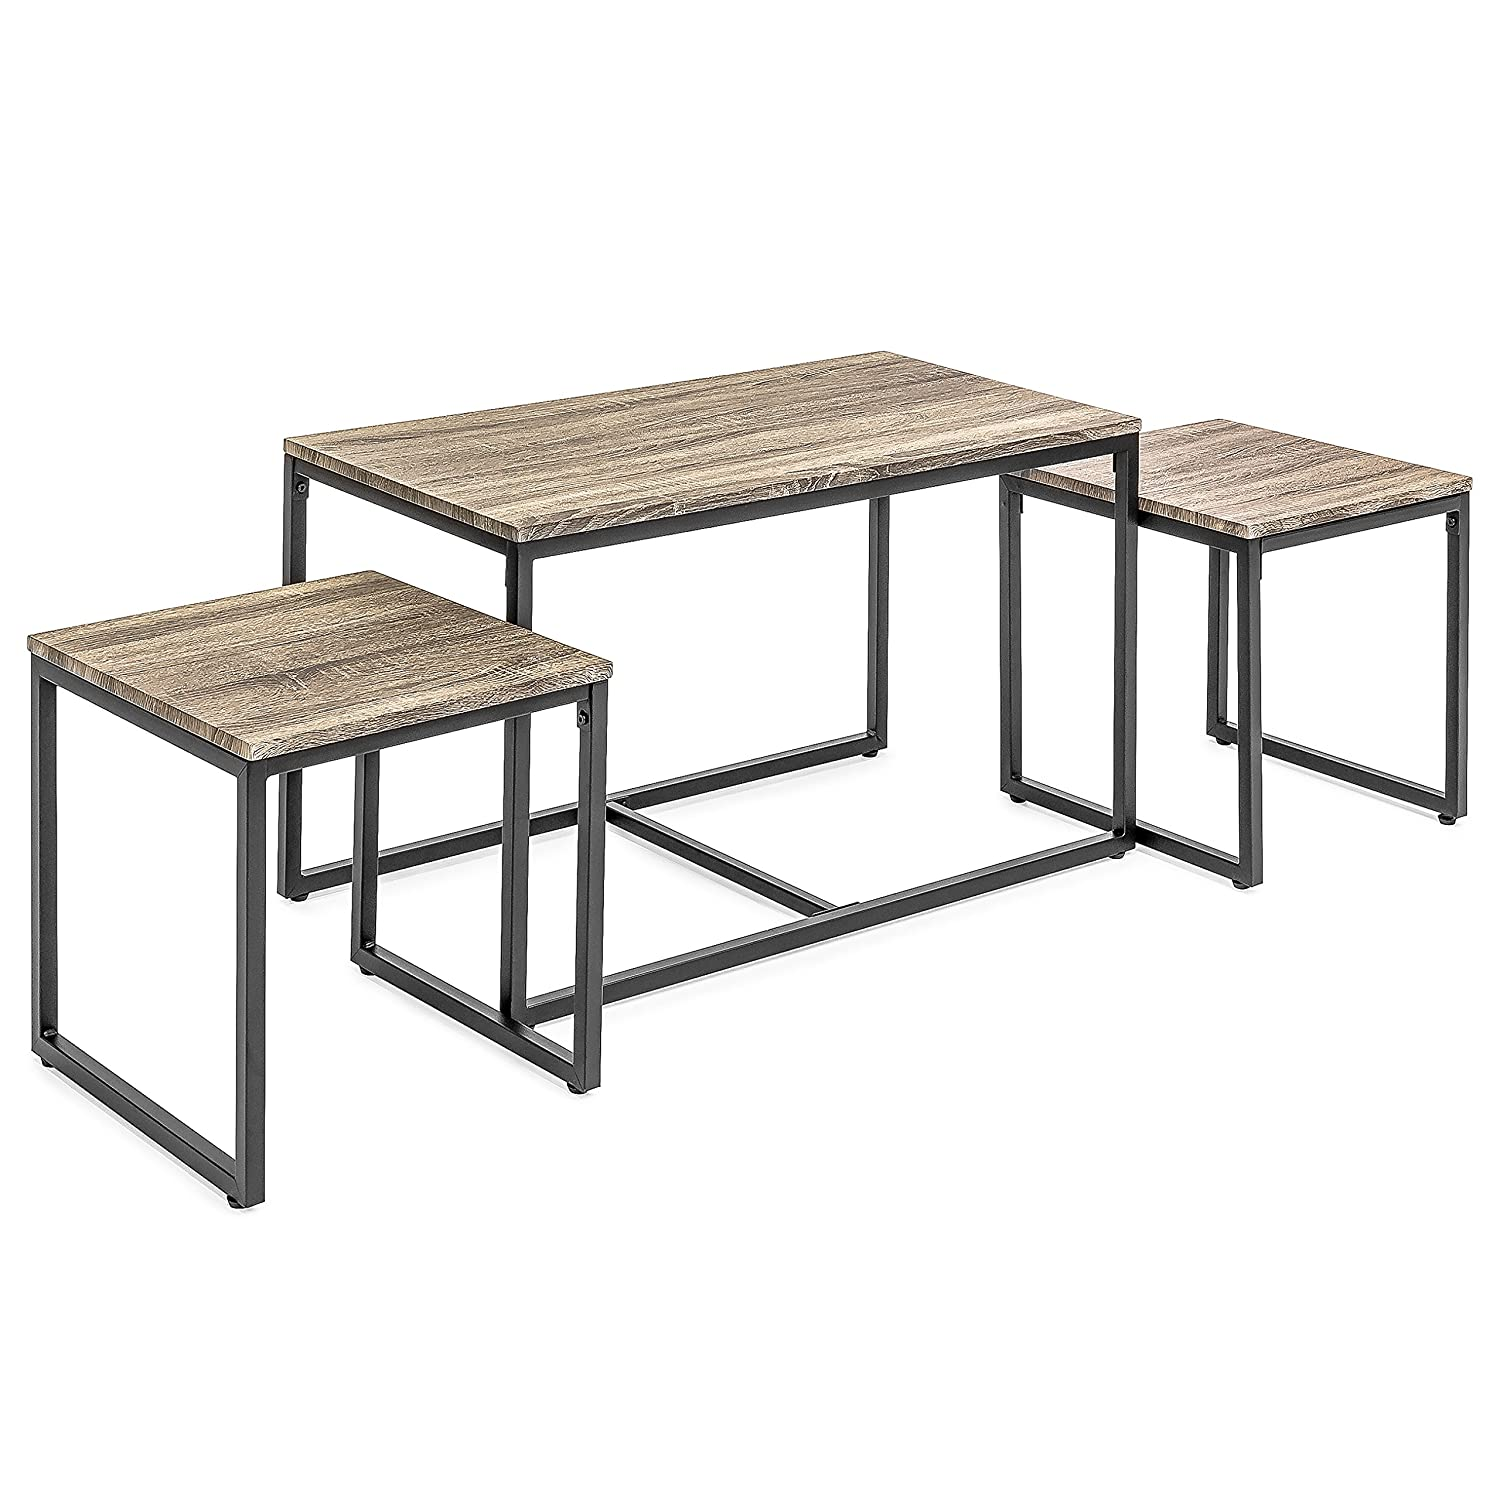 Amazon com best choice products 3 piece modern lightweight nesting coffee accent table living room furniture lounge set w 2 end tables brown kitchen